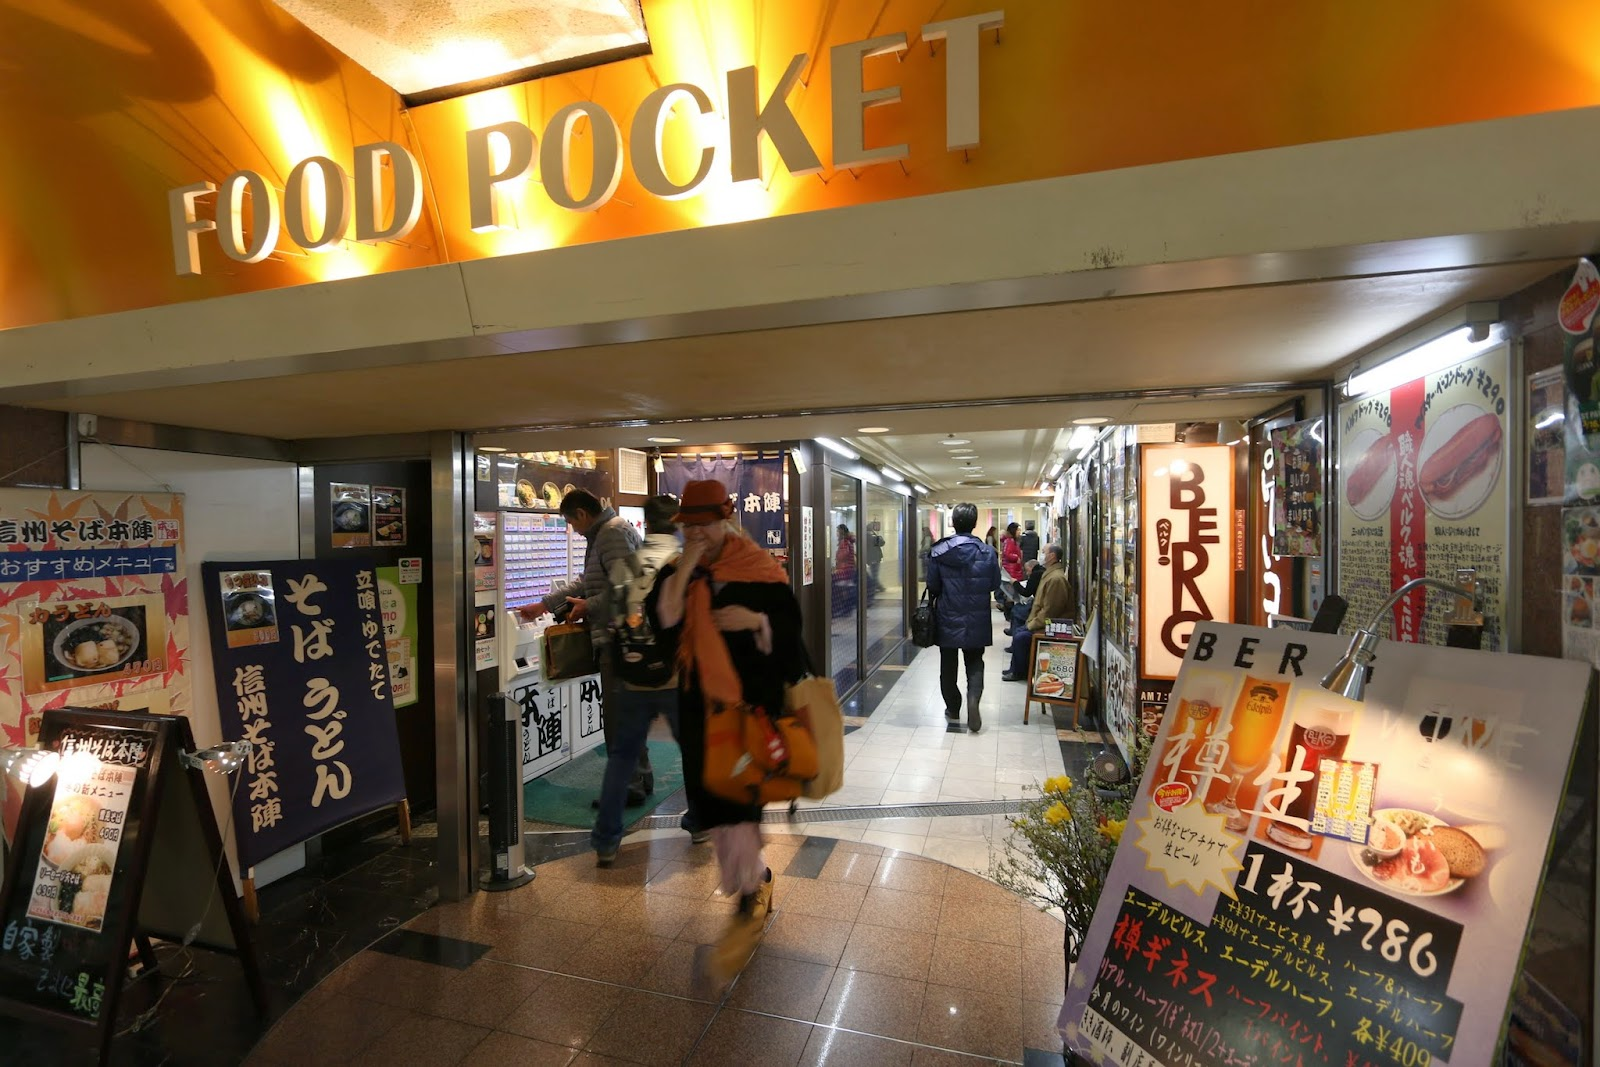 Reasonable prices of Japanese food can be found at small outlets (restaurants) in a train station or along the narrow alley in Japan